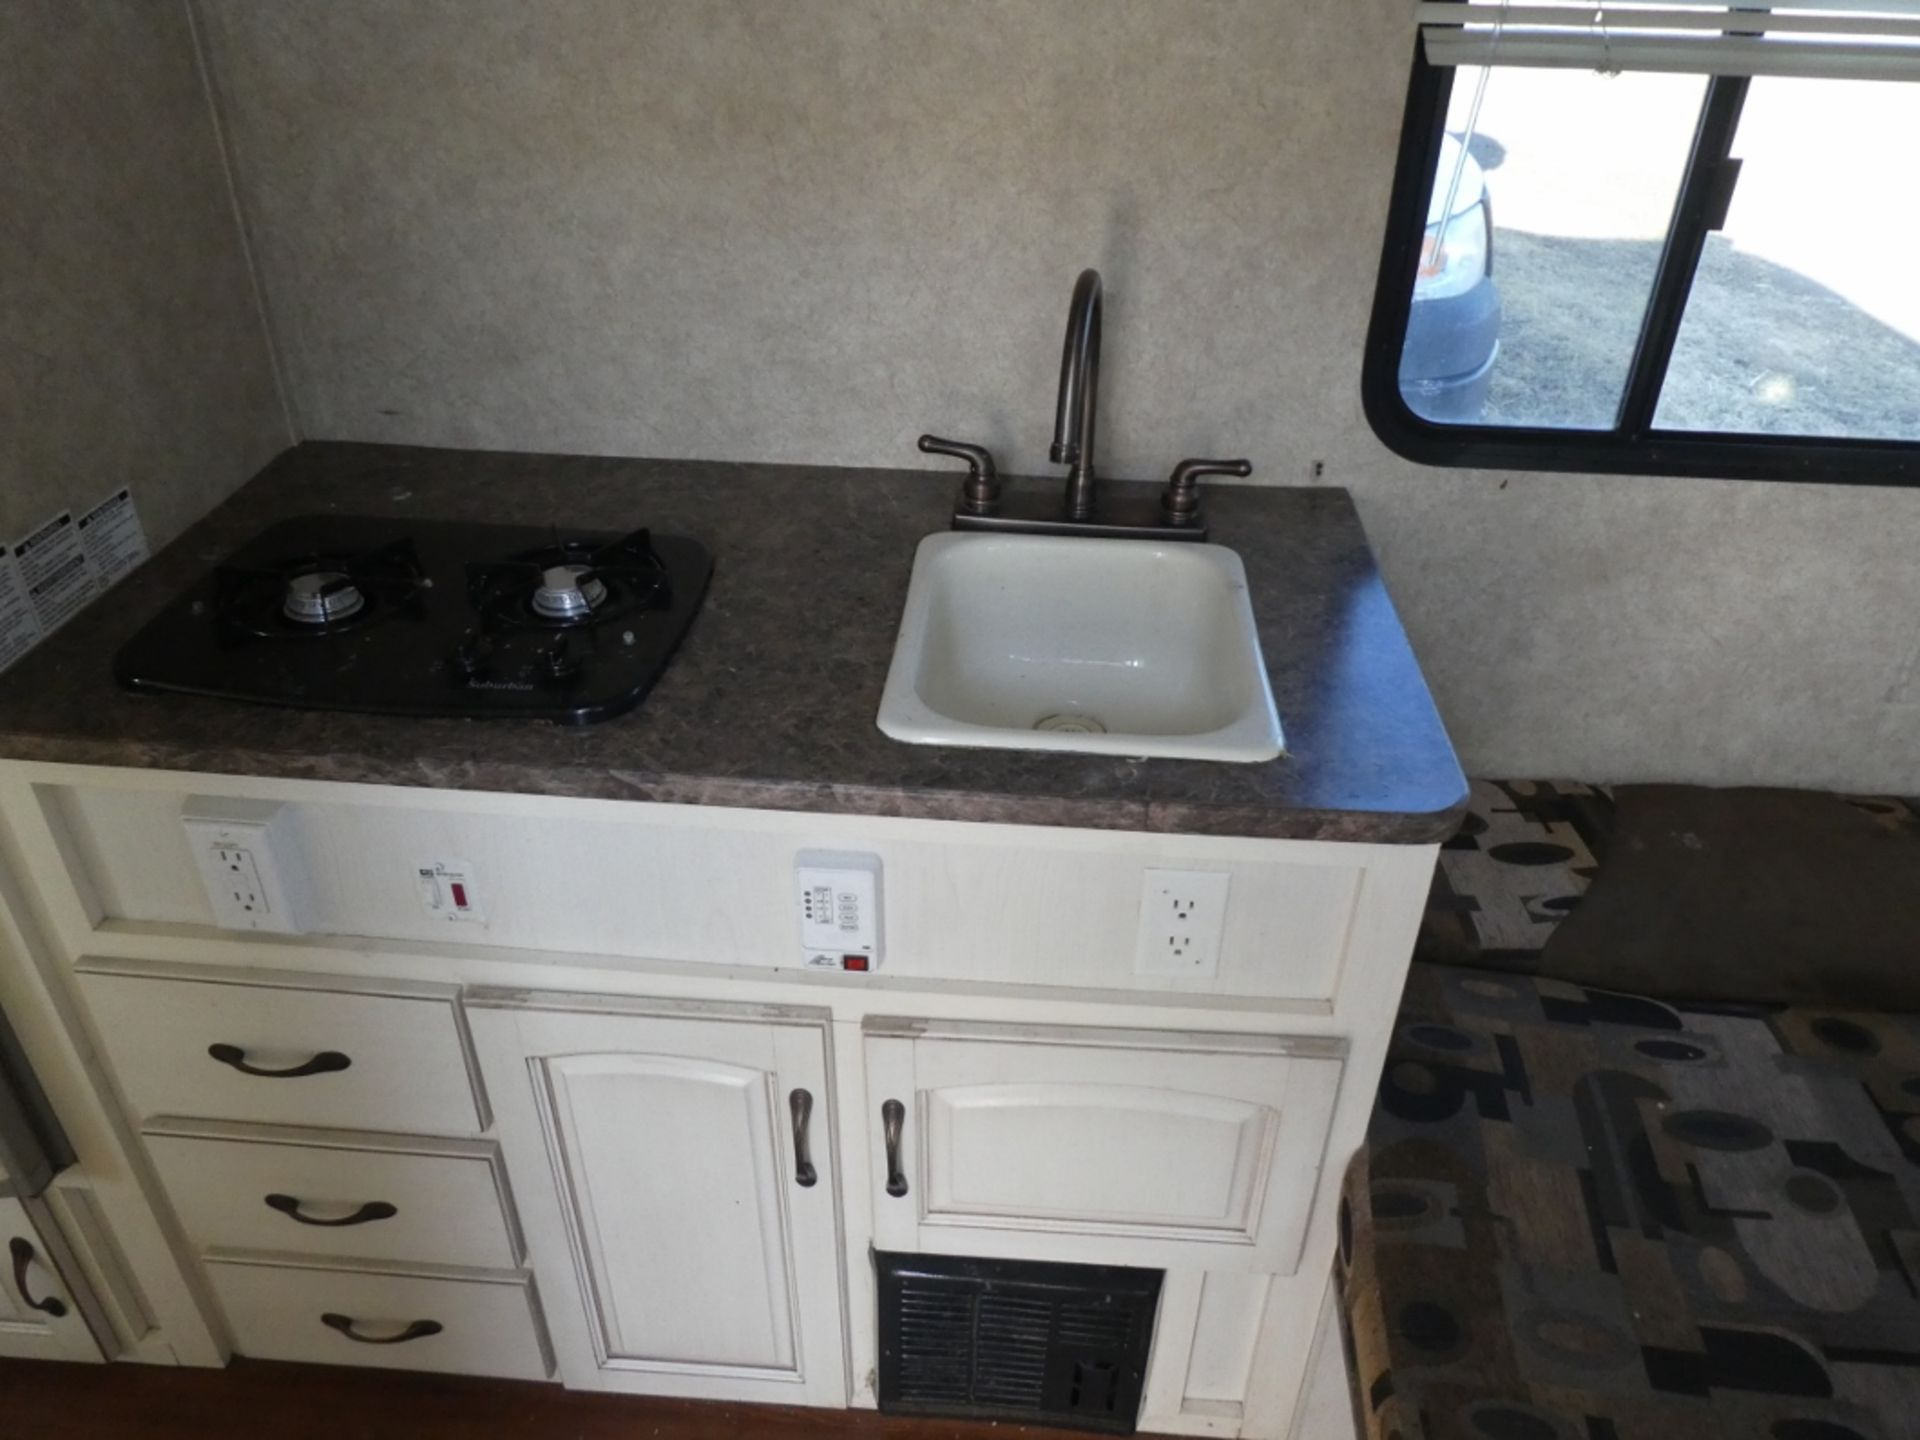 10/2008 FOREST RIVER R-POD S/A HOLIDAY TRAILER MODEL RP171 S/N 4X4TRP7151L004142 W/A/C, BATHROOM, - Image 12 of 12